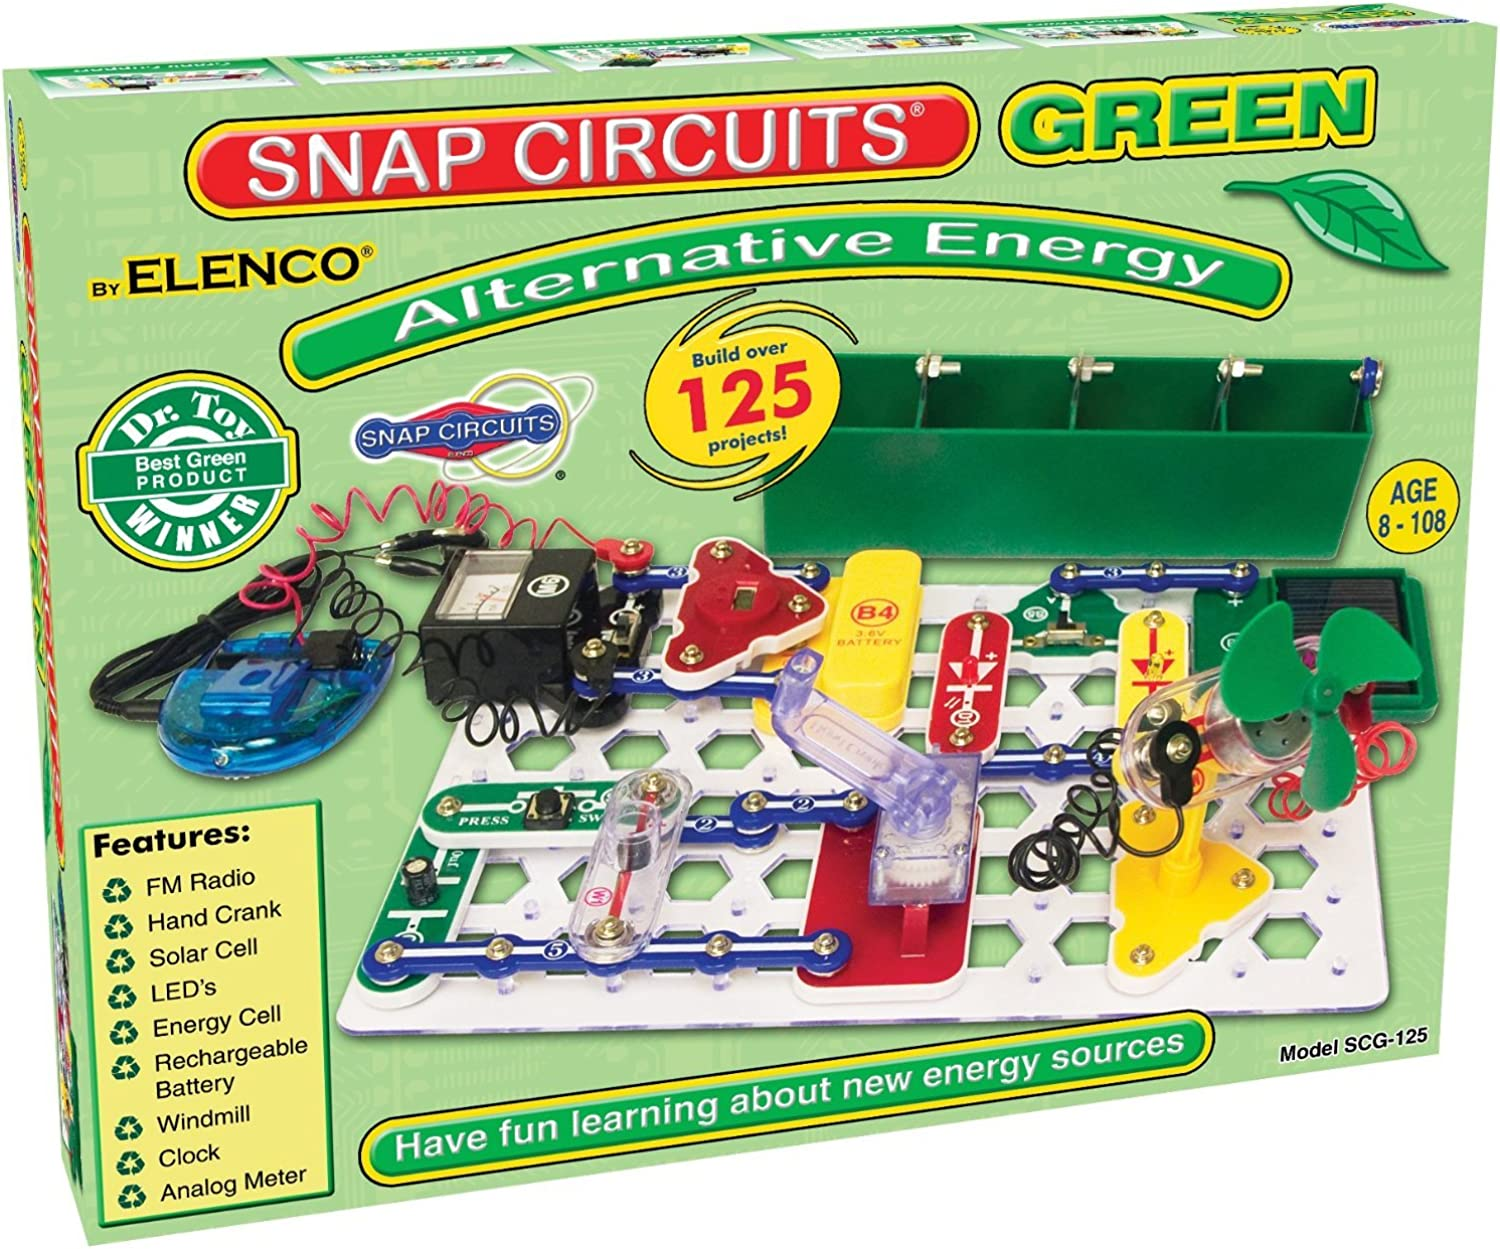 Snap Circuits Alternative Energy Green Electronics Exploration in Alternative Energy Kit   Over 125 STEM Projects   4color Project Manual   40+ Snap Modules   Unlimited Fun